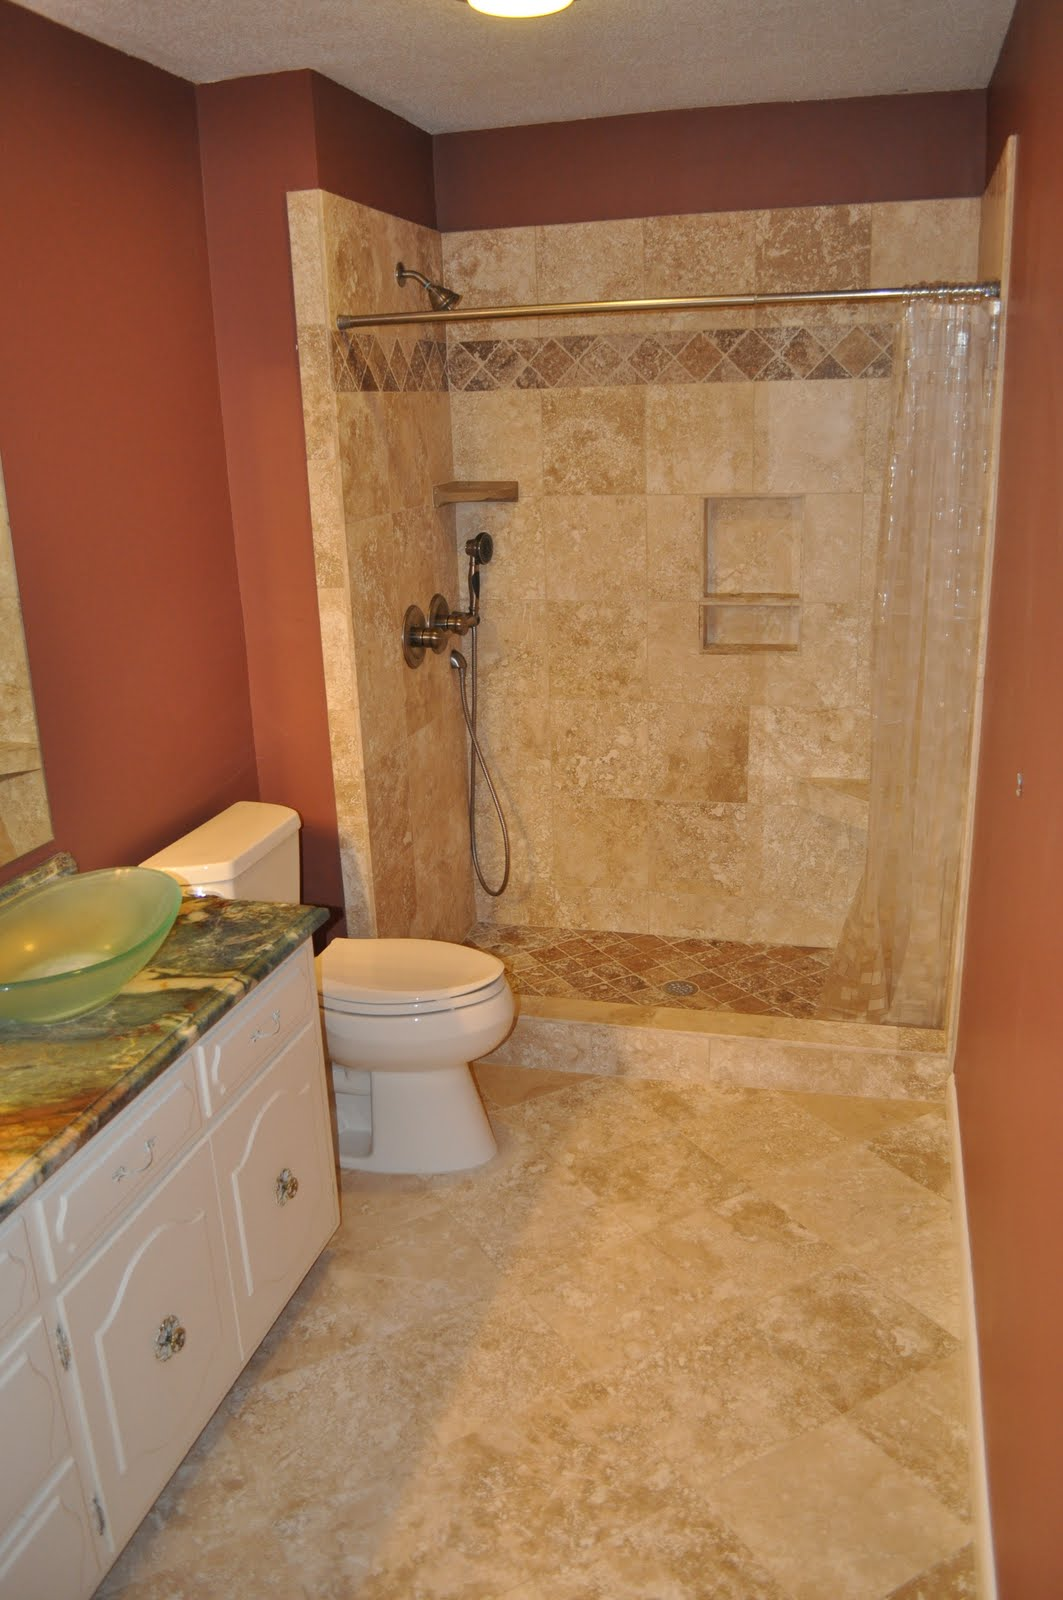 Cayman painters construction ecayonline - Pictures of remodeled small bathrooms ...